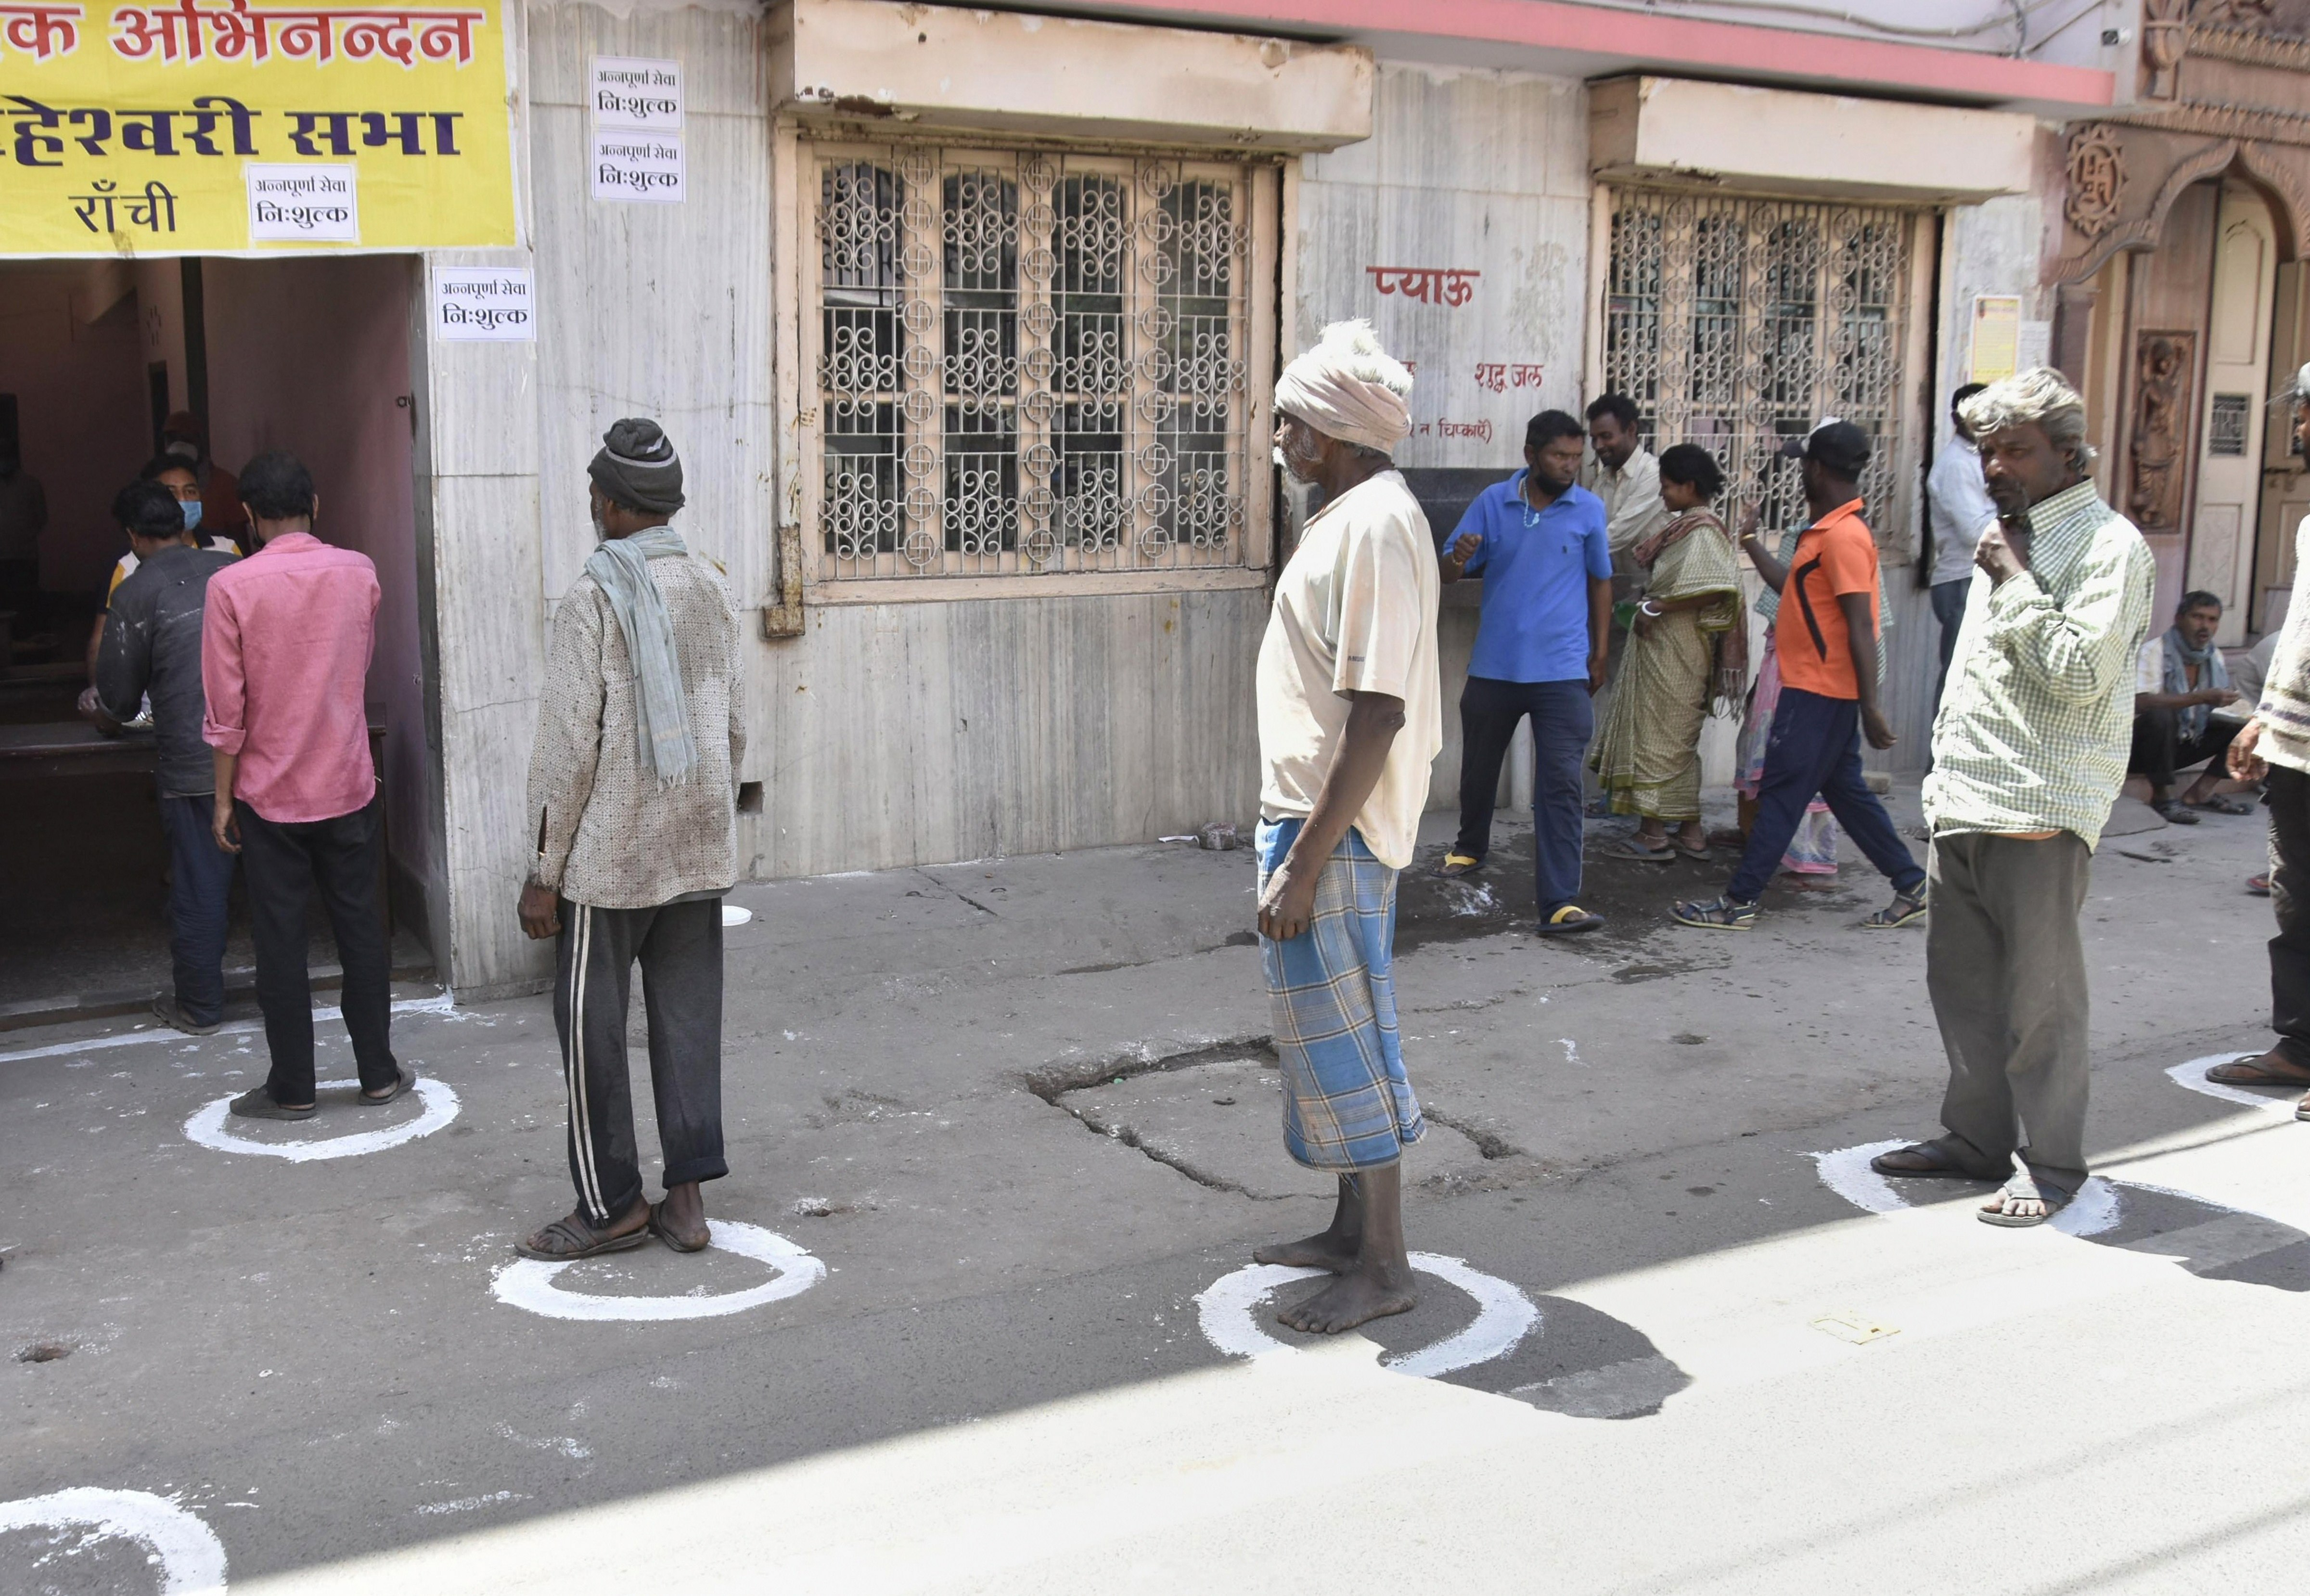 Labourers stand in a queue maintaining social distance as they collect free meals being distributed by a charitable society during total lockdown amid the coronavirus pandemic, in Ranchi, Thursday, March 26, 2020